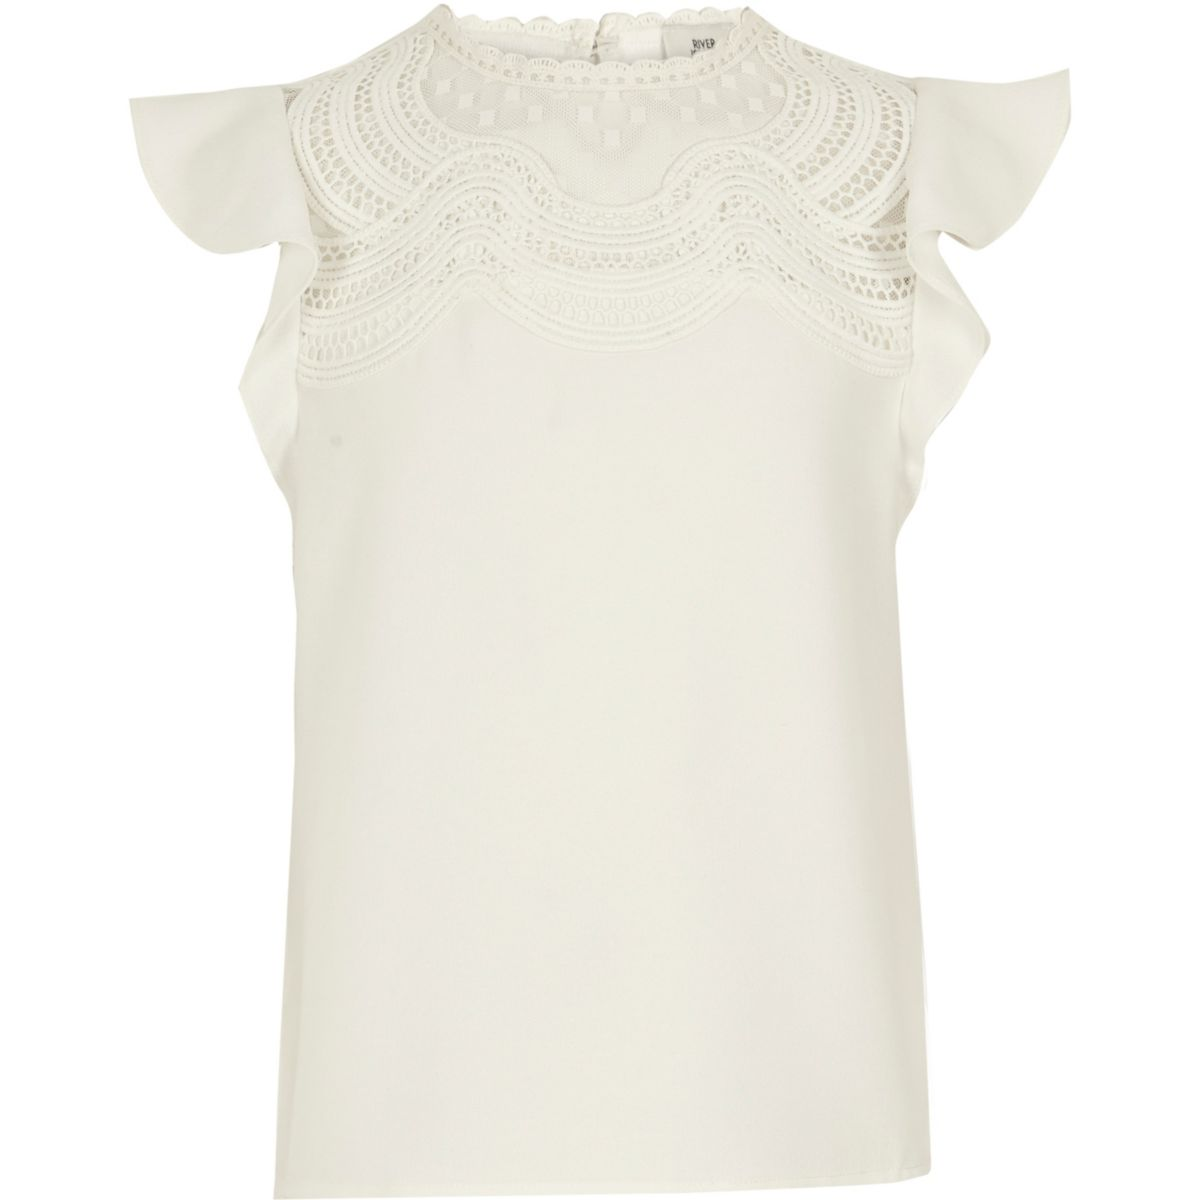 Girls white crochet lace yoke top